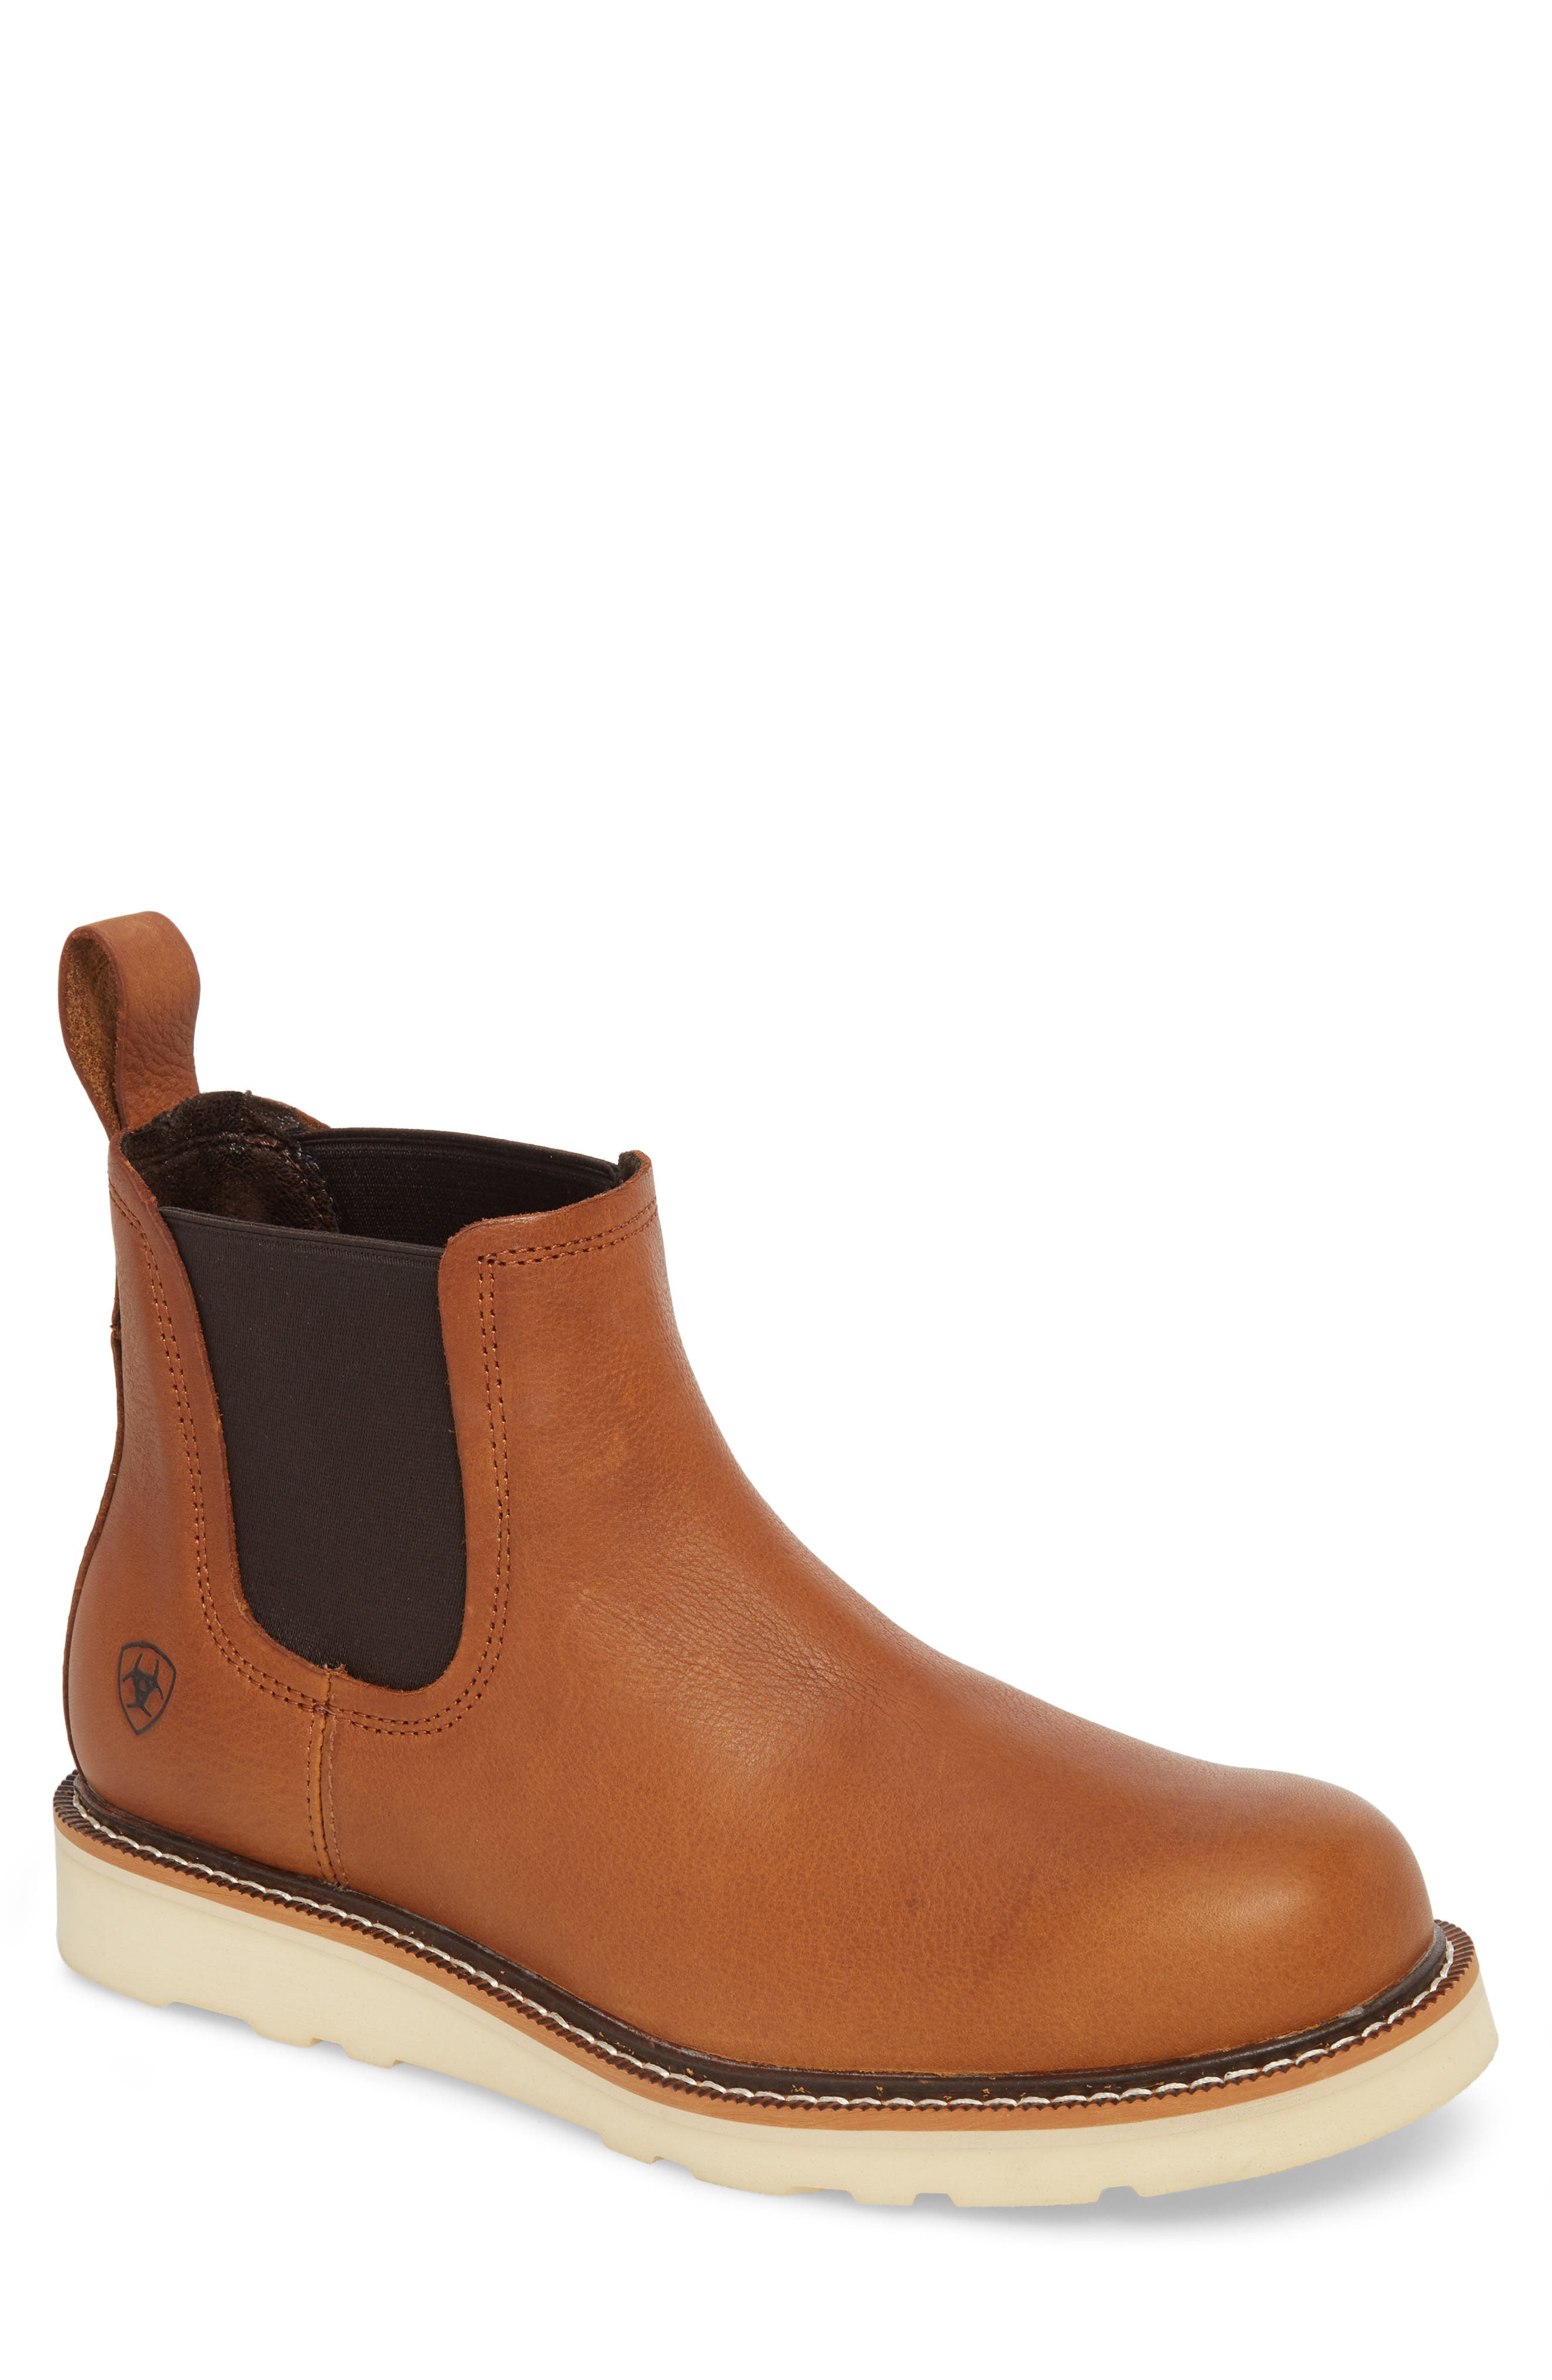 Rambler Recon Mid Chelsea Boot,                             Main thumbnail 1, color,                             GOLDEN GRIZZLY